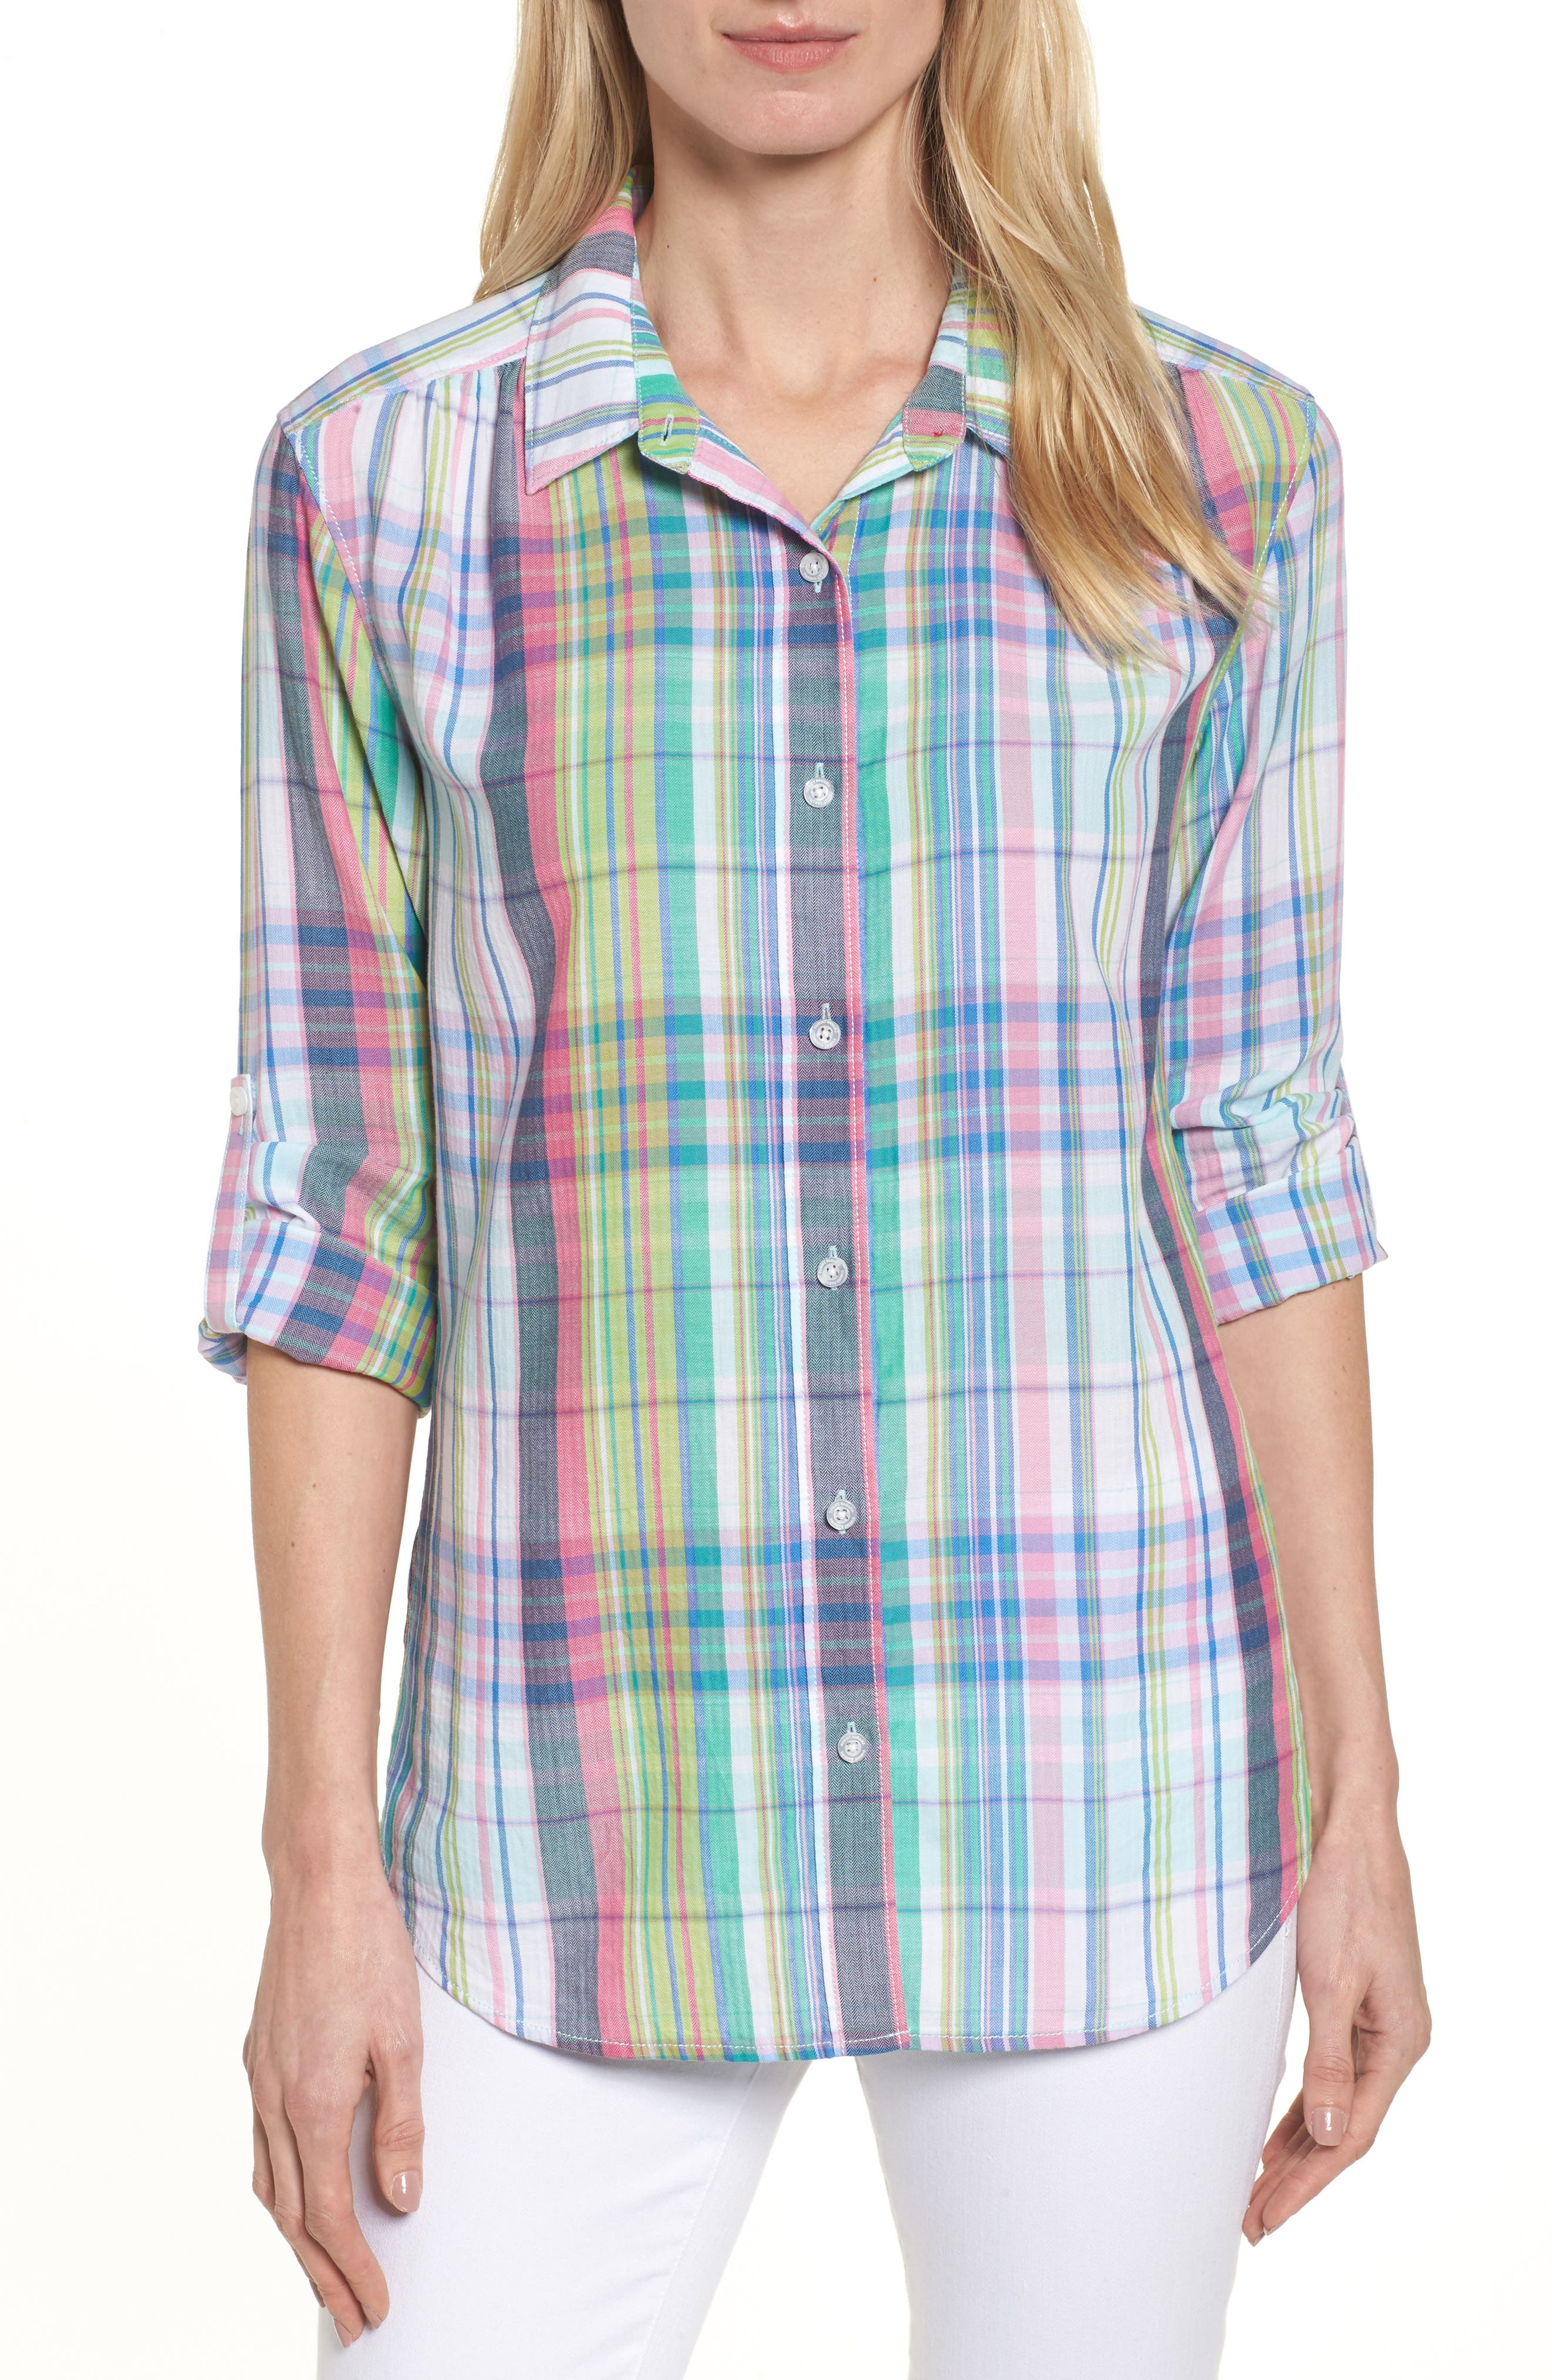 Muffy Madras Button-Up Top,                             Main thumbnail 1, color,                             650